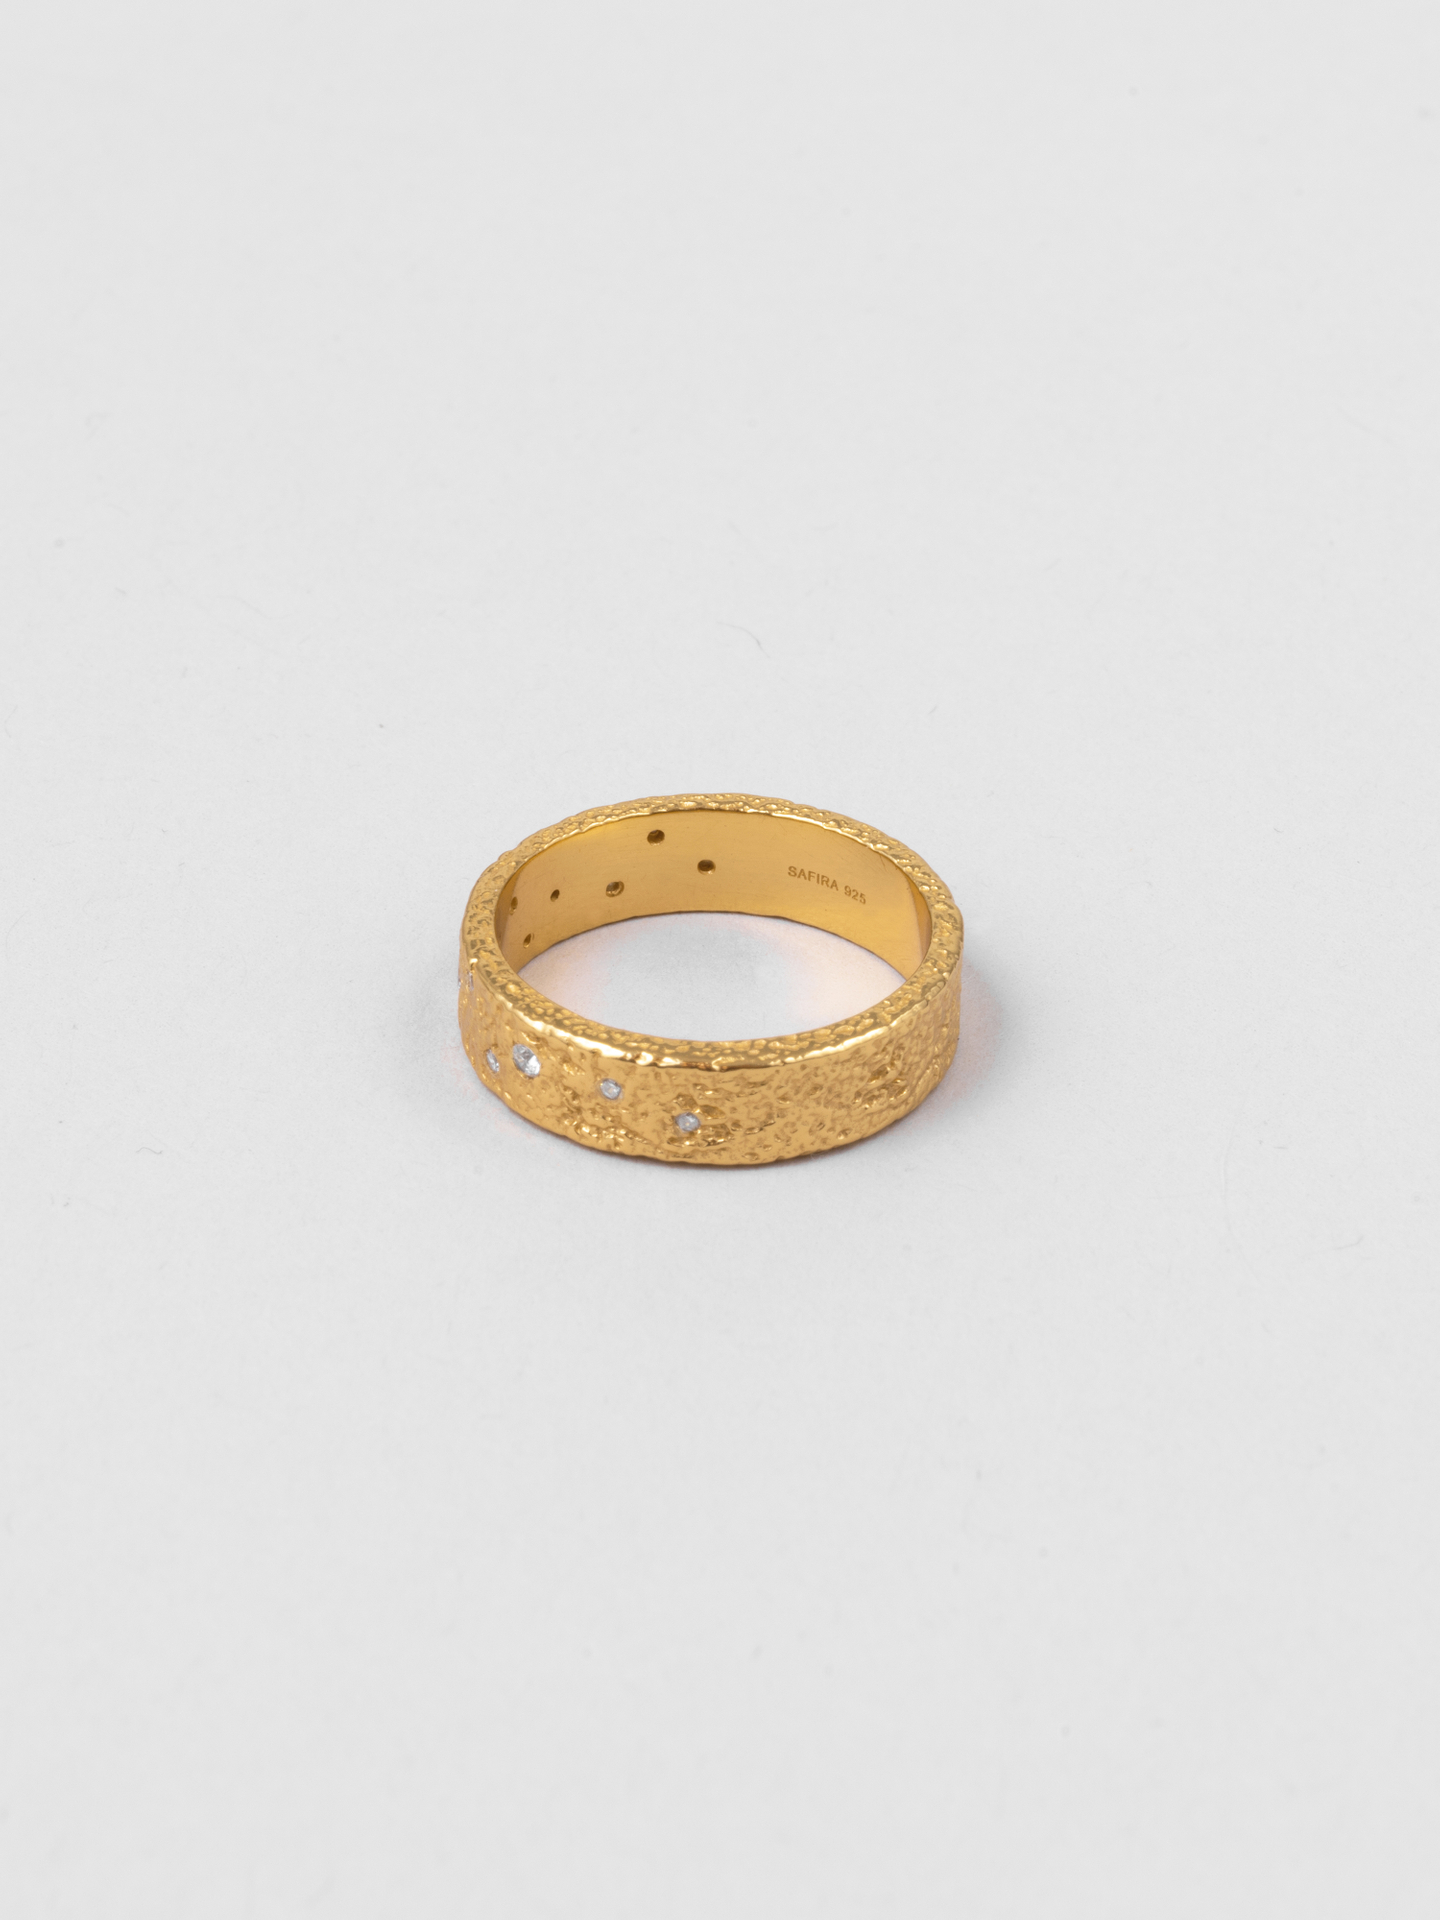 Charity Ring